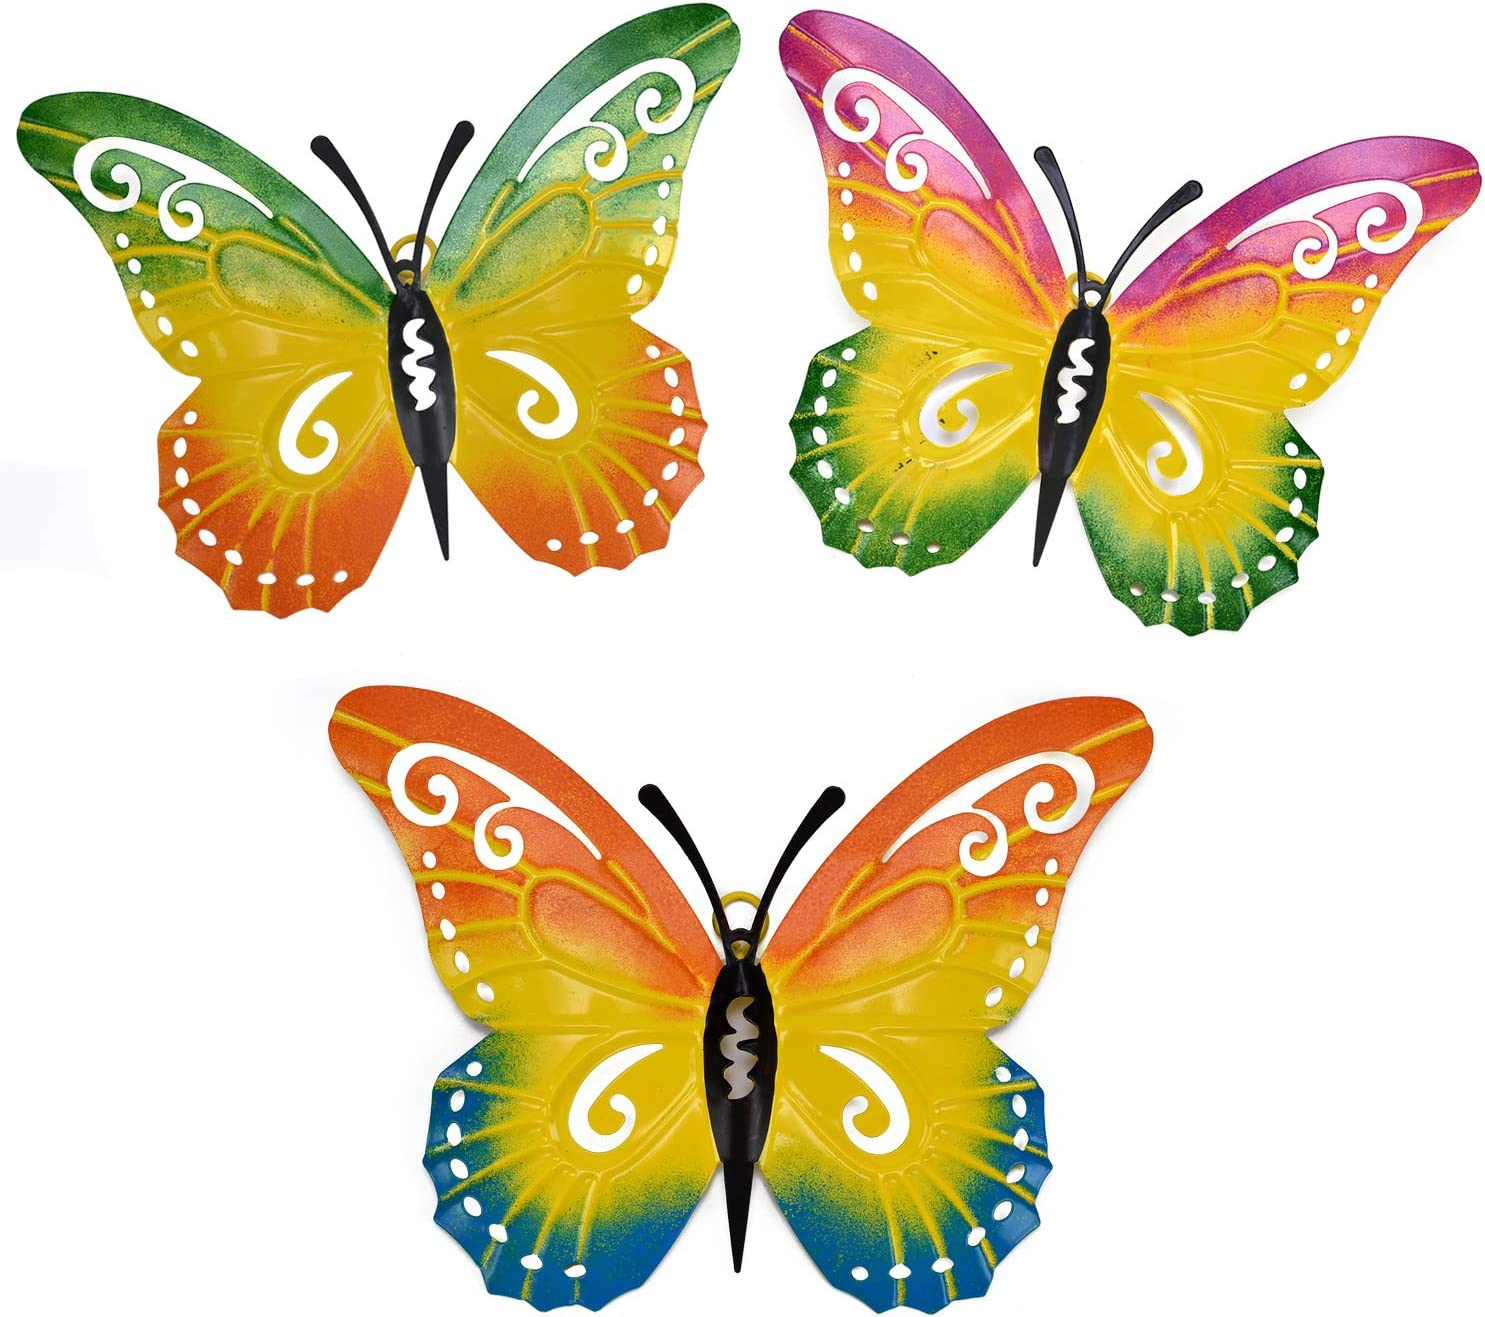 Yeahome Metal Butterfly Wall Decor - Wall Art Decorations Hanging for Kitchen, Outdoor, Fence, Garden, Yard, Set of 3 Butterflies Ornament, Handmade Gift for Indoor or Outdoor easter gifts for kids